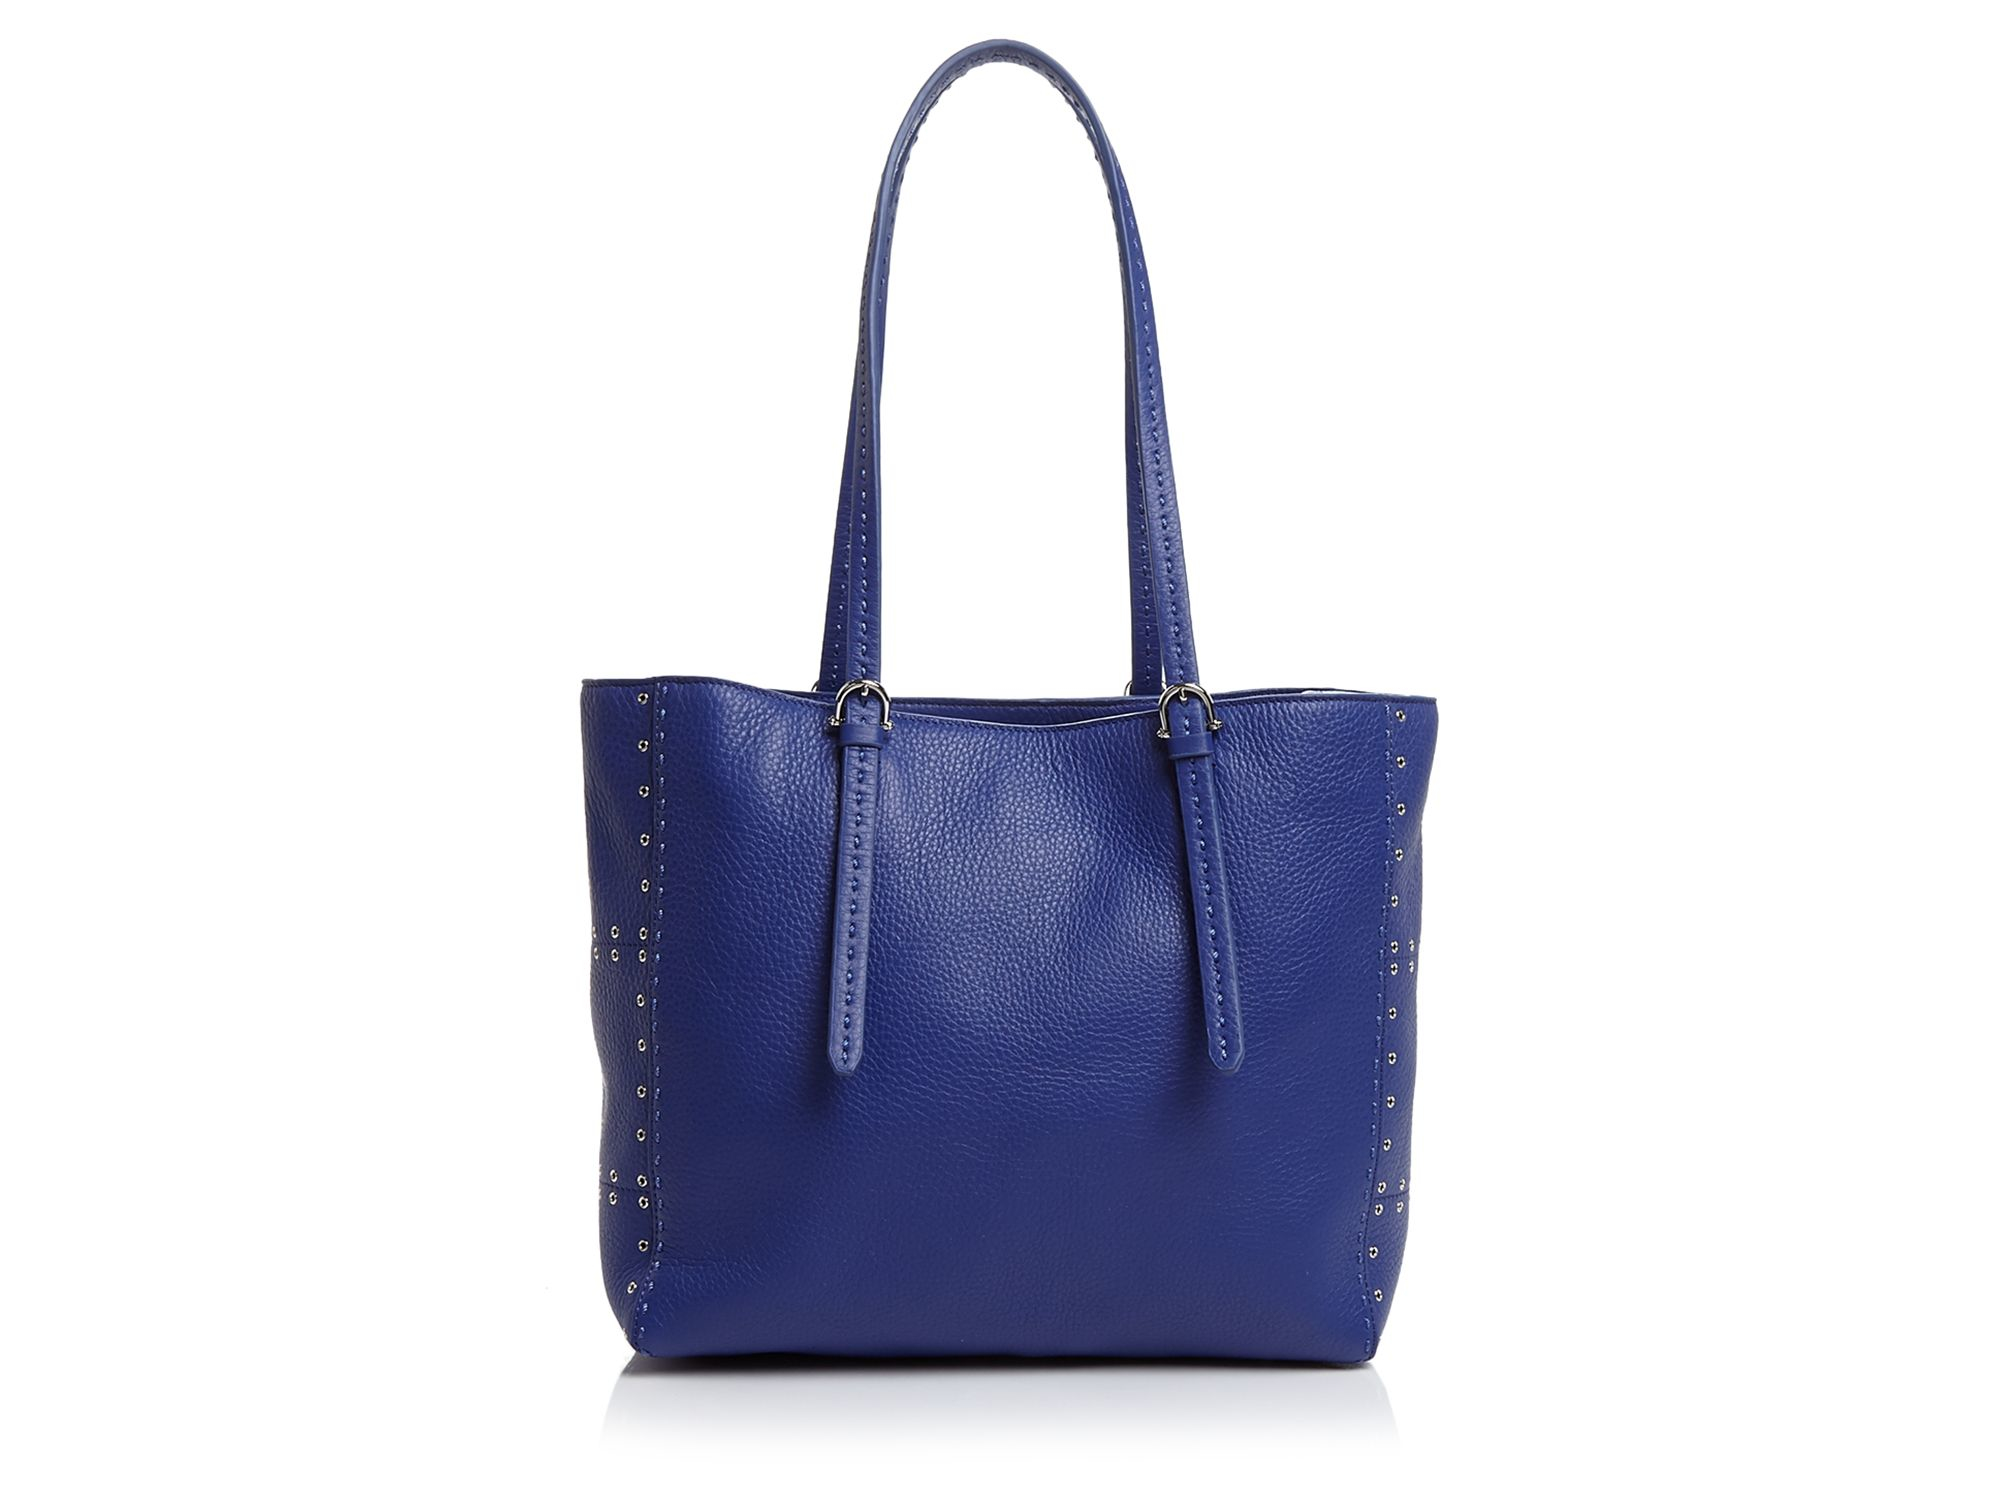 Etienne Aigner Leather Tote - Convertible Grommet in Cobalt (Blue)